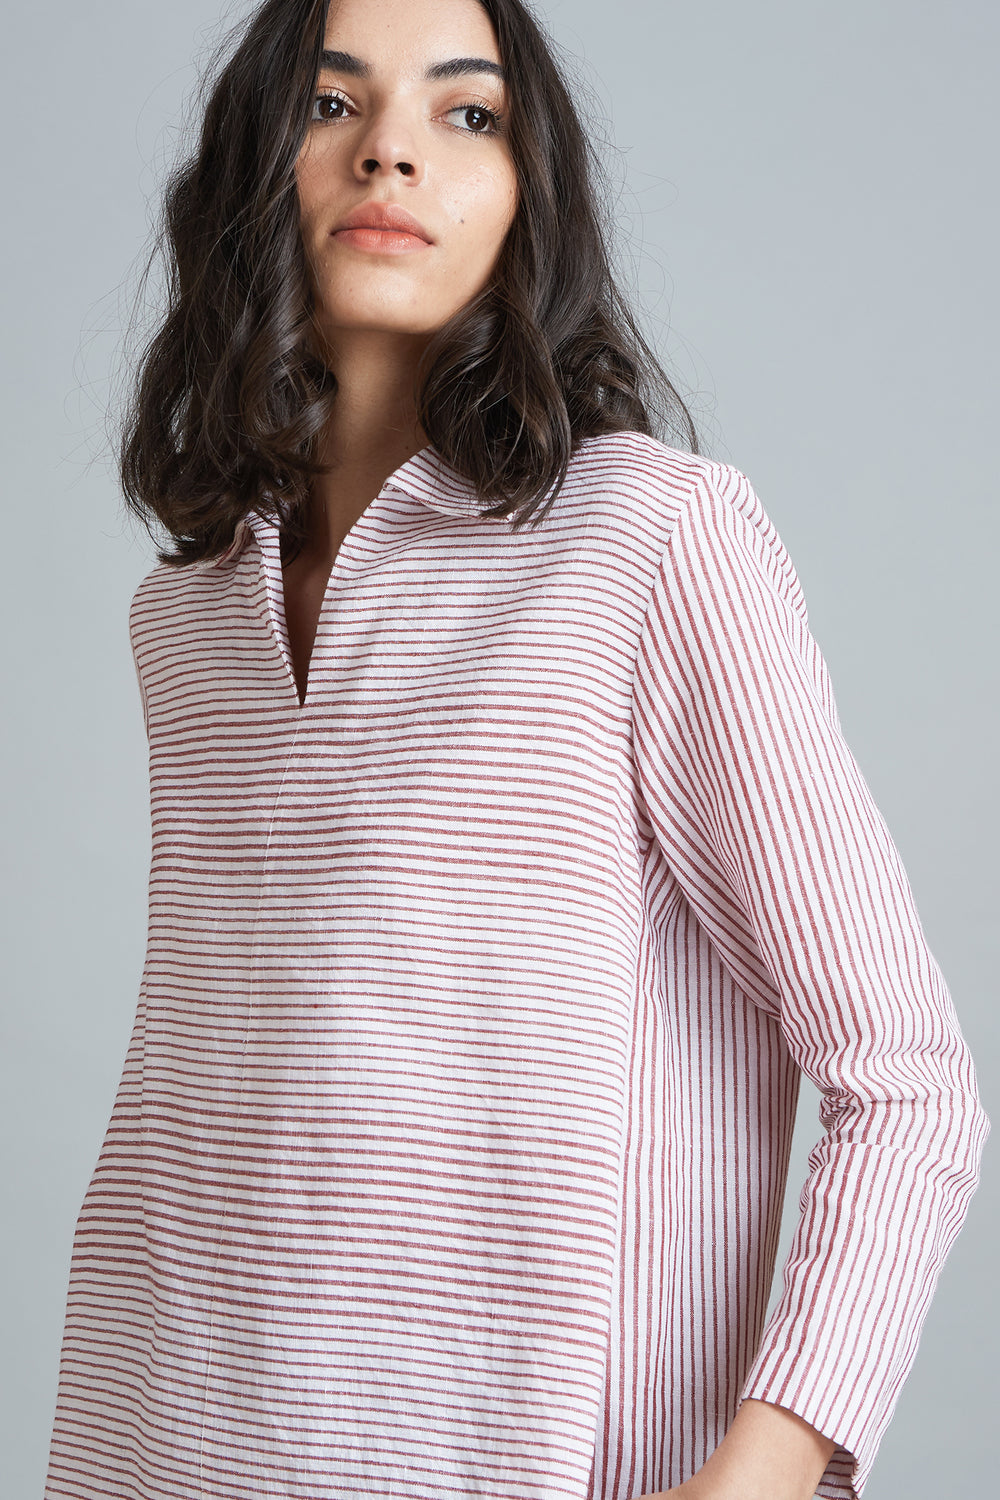 Striped Popover Shirt - Red